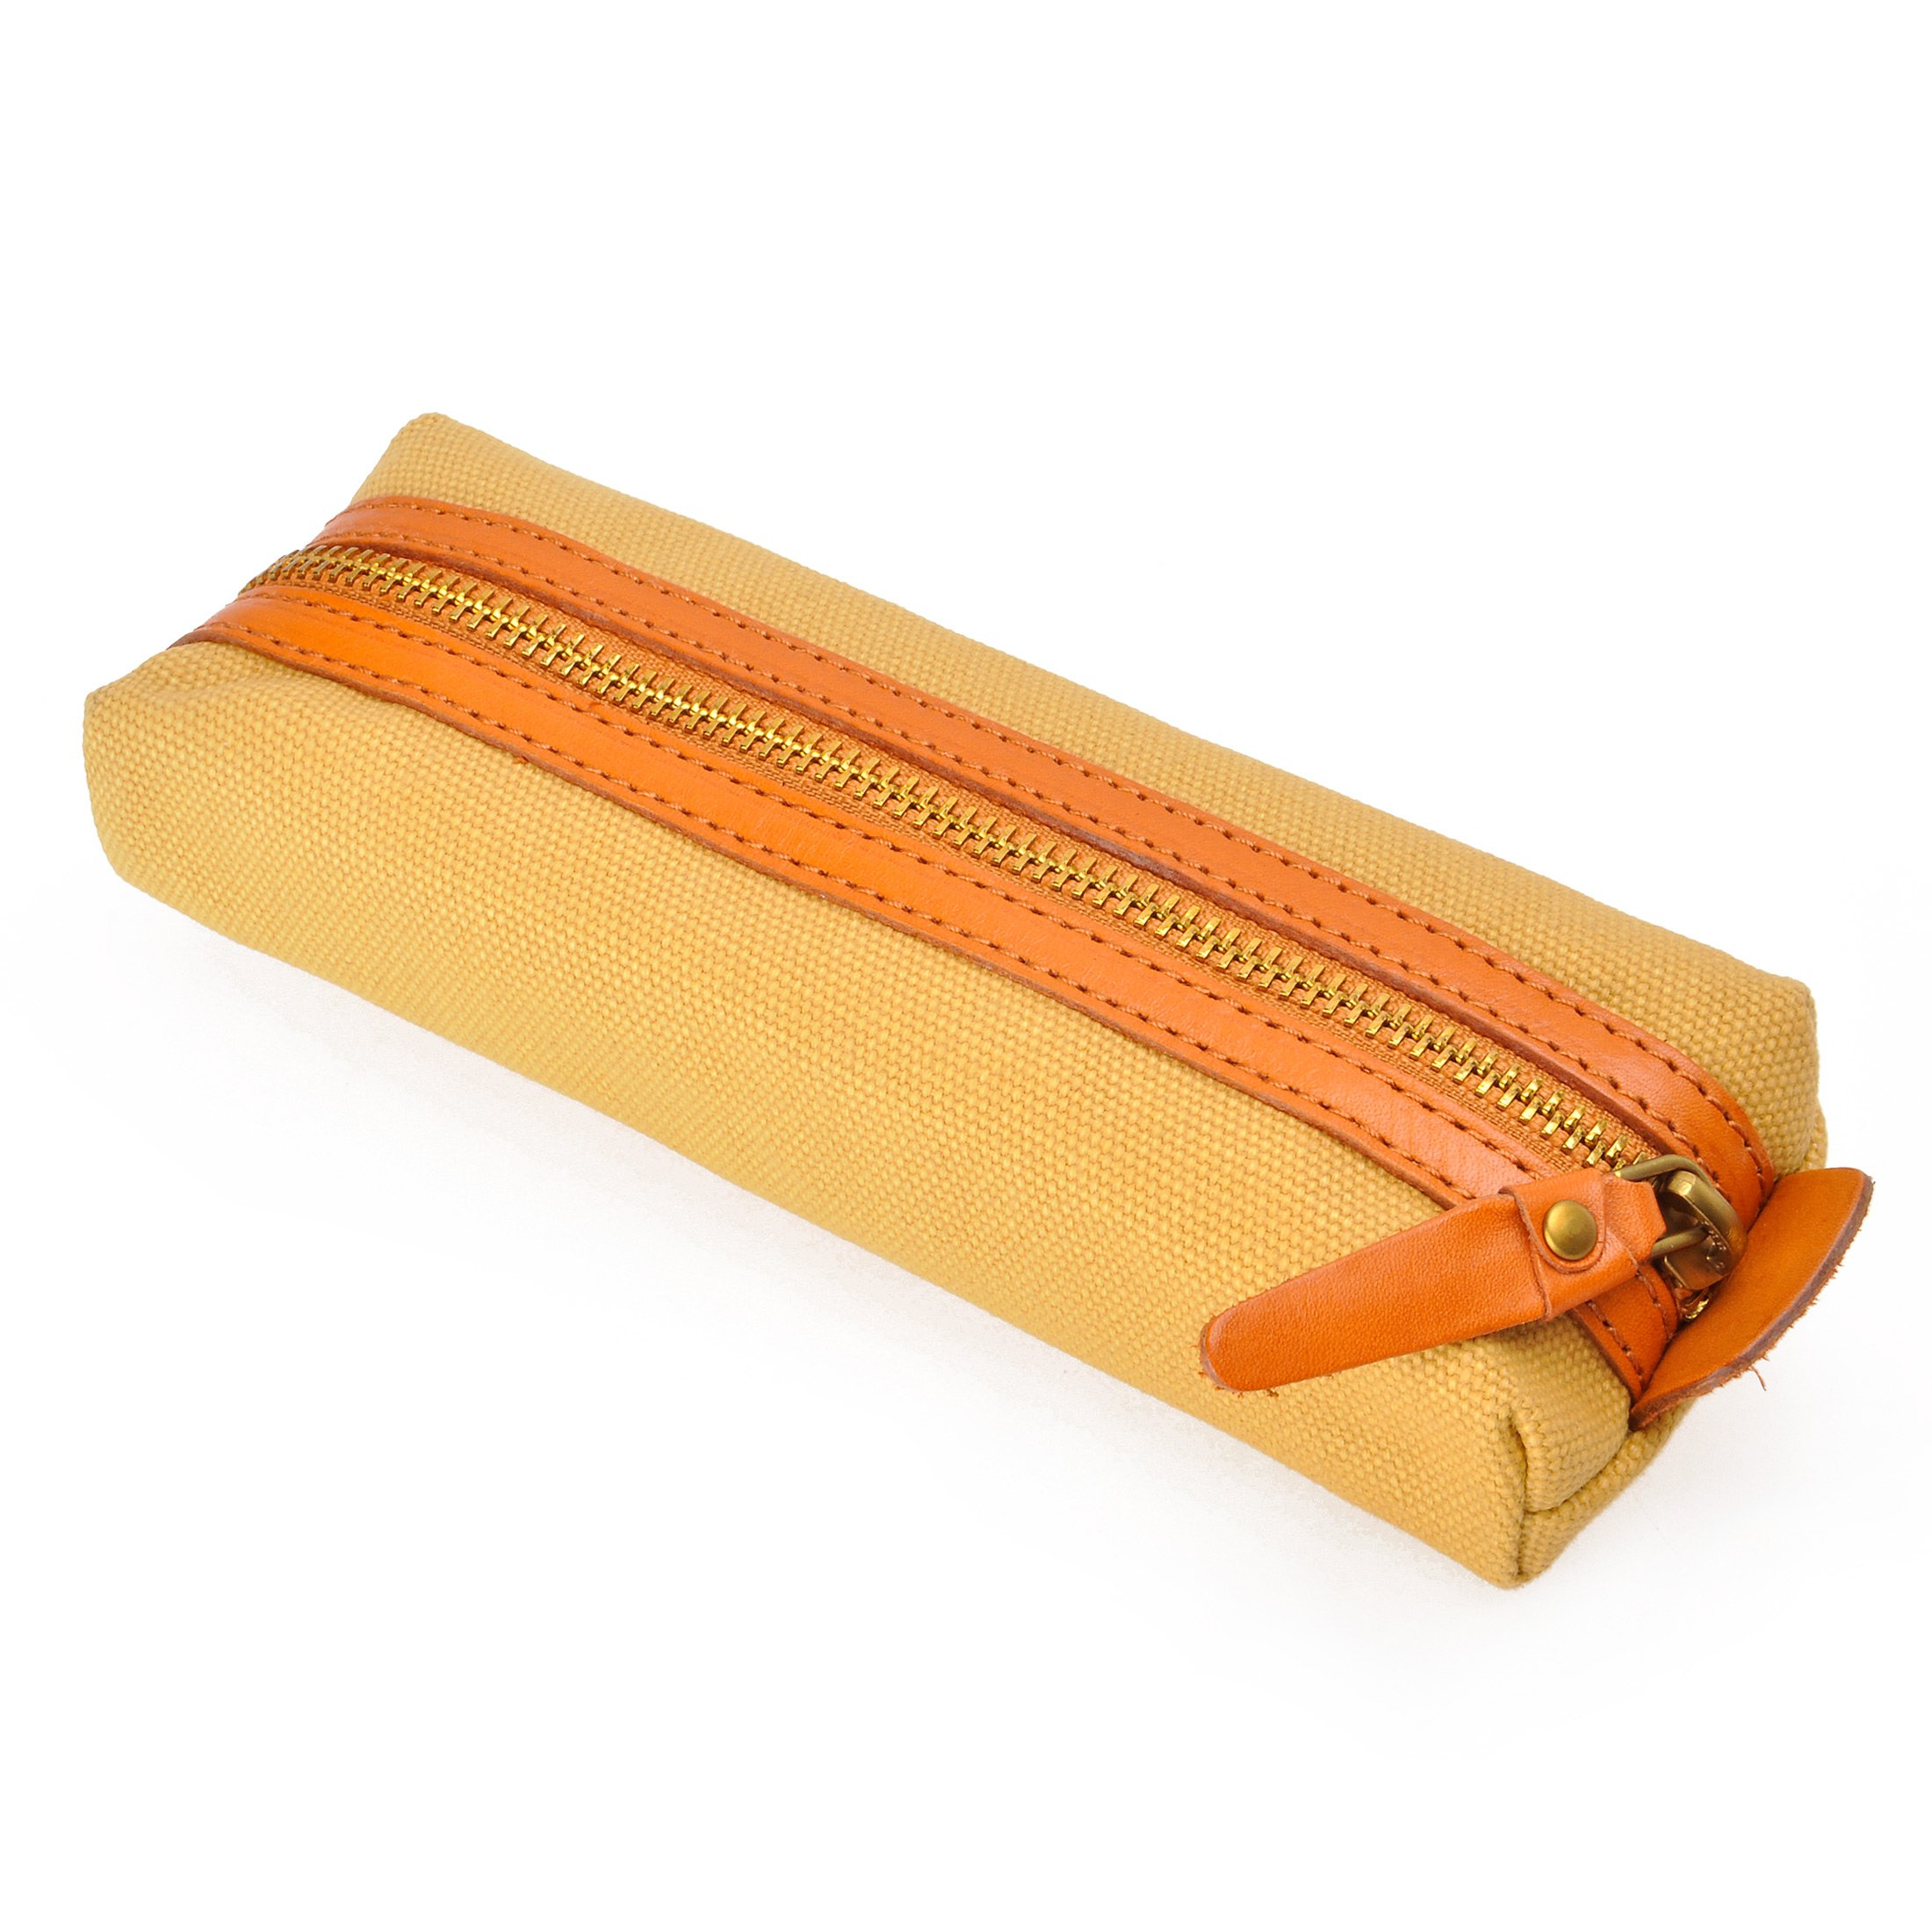 Slim Canvas Pencil Pouch Pen Bag Stationery case Gadget Bag Small Storage Bag (yellow2) by ZLYC